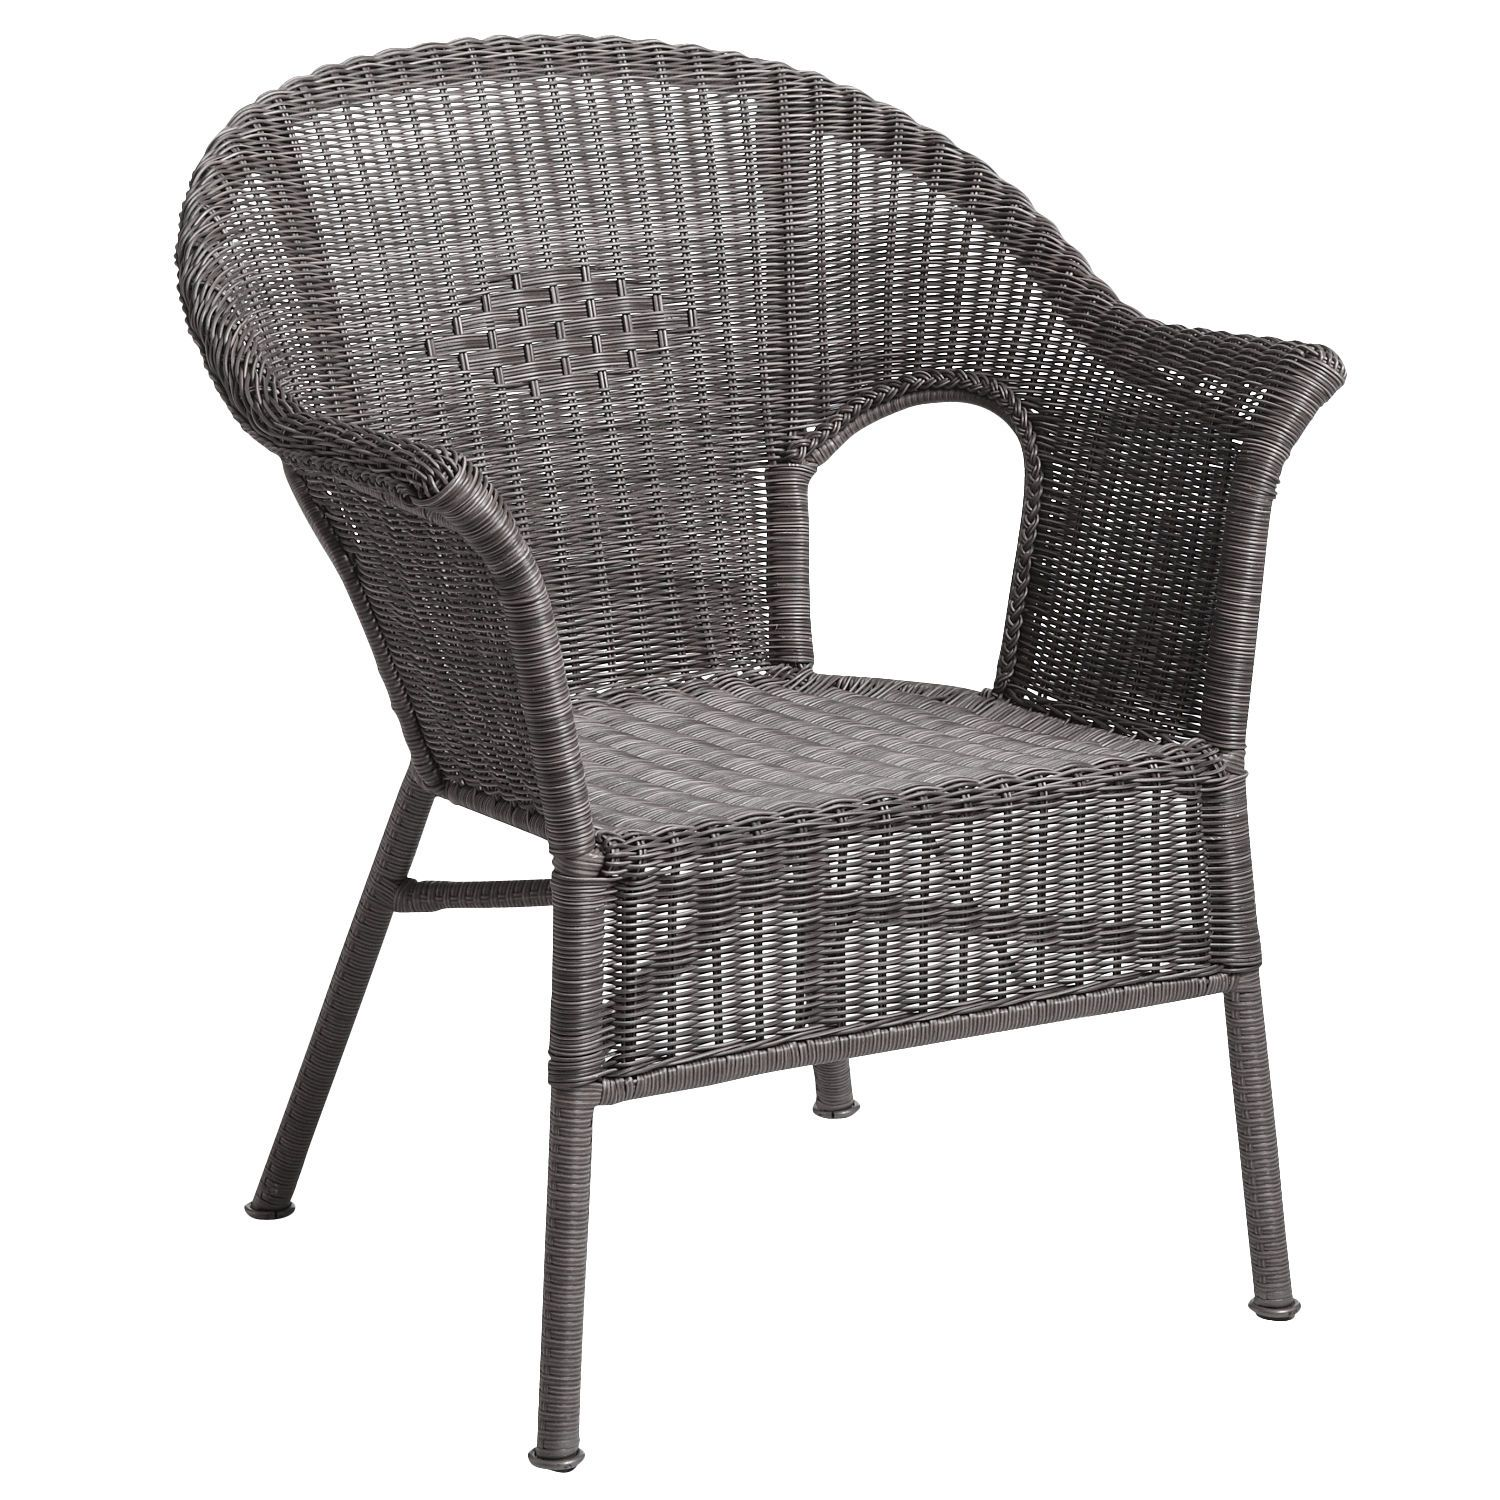 Casbah Chair - Gray